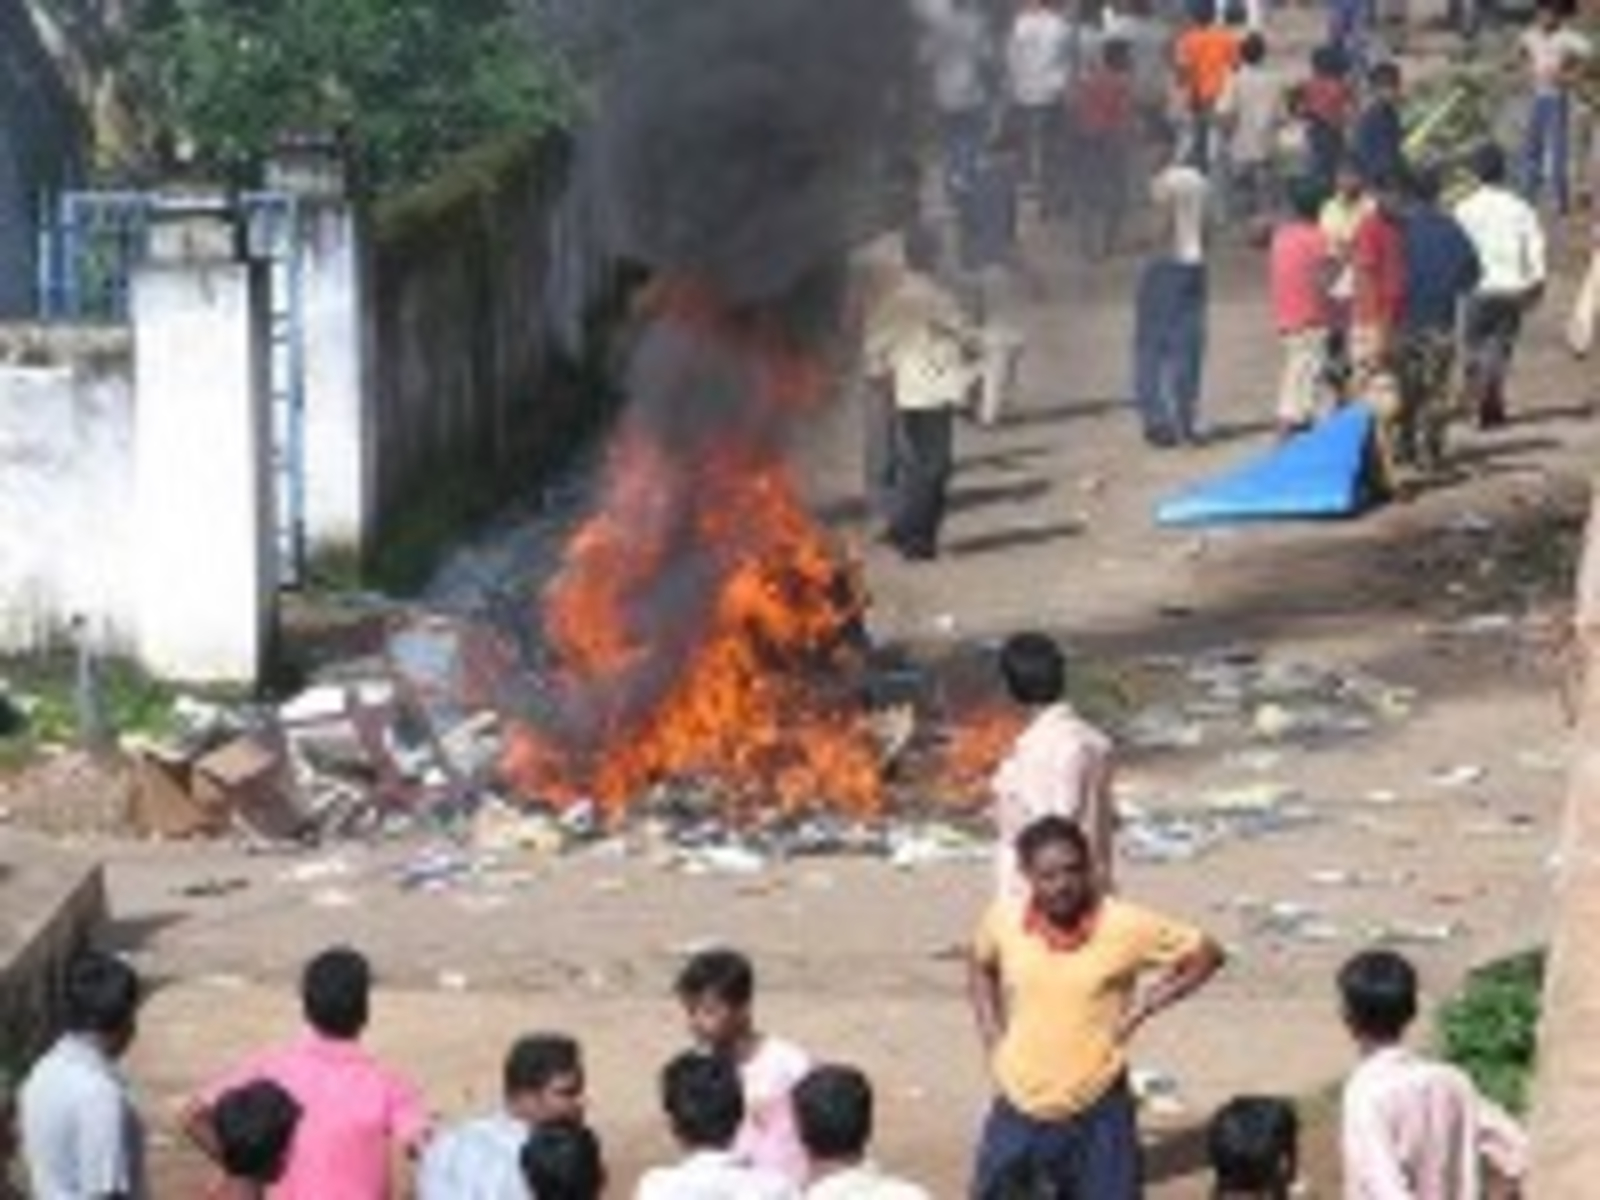 violence-against-christians-in-orissa-0101-200-x-150